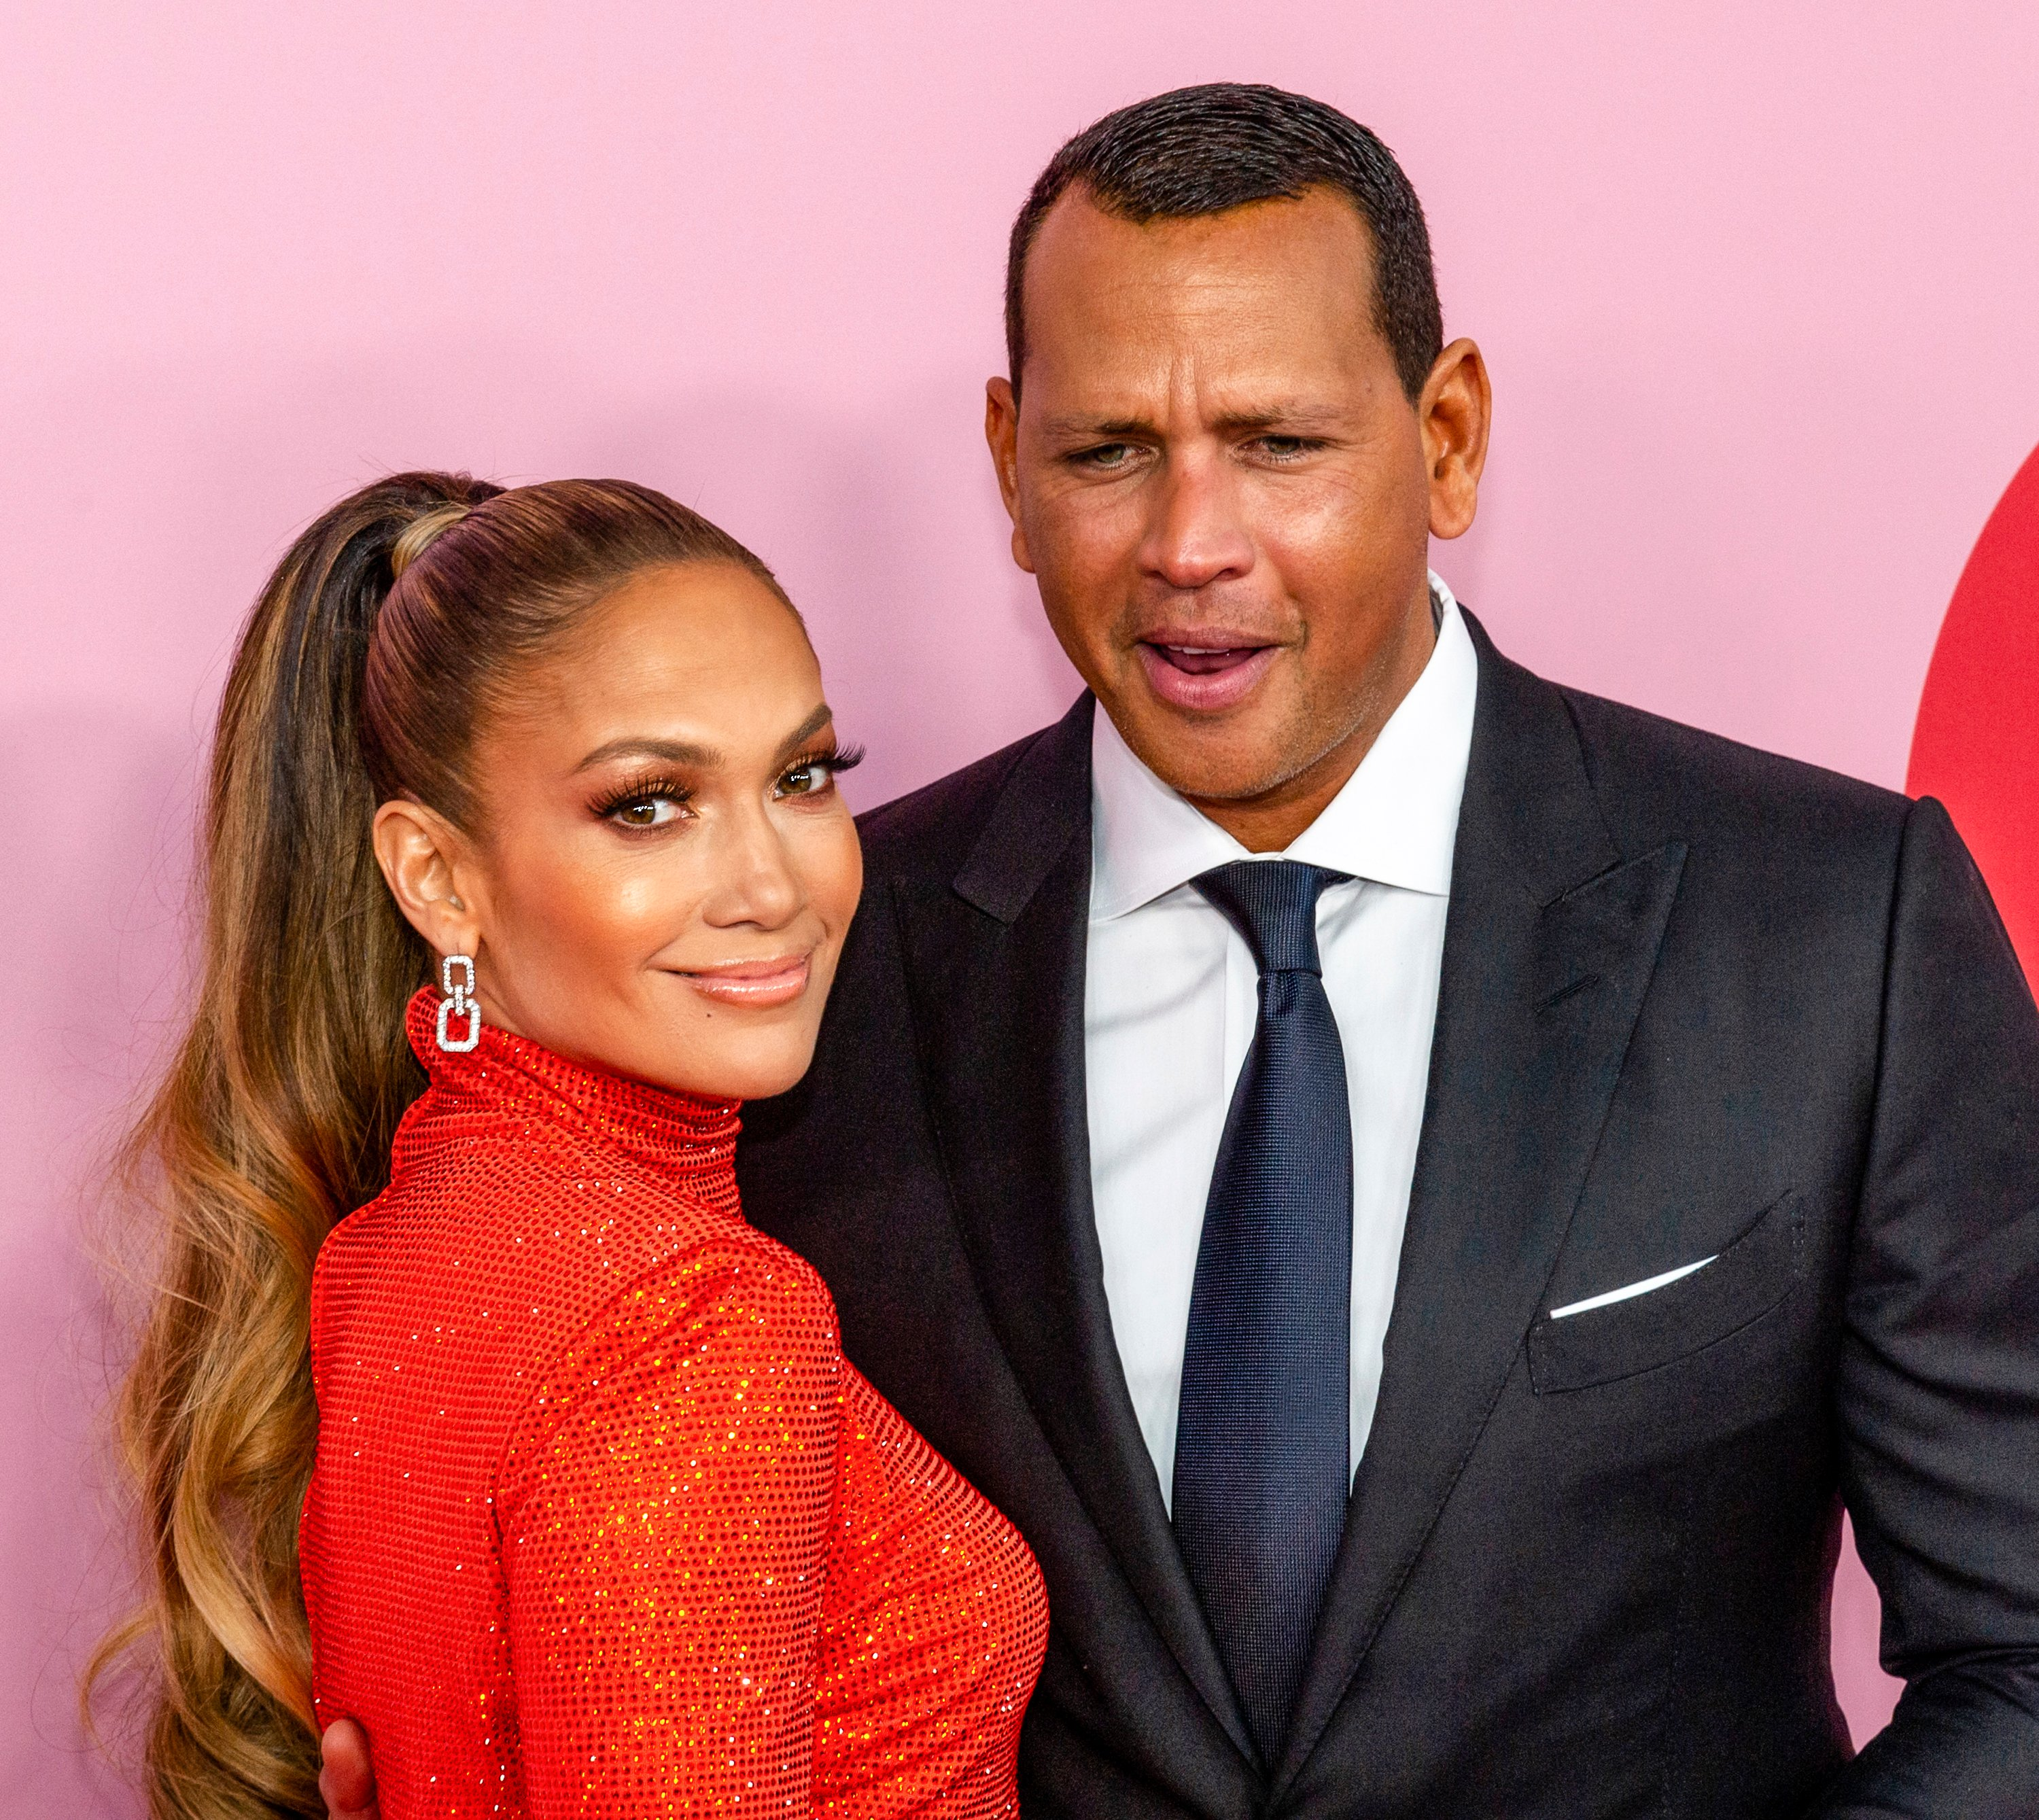 Jennifer Lopez and fiance, Alex Rodriguez at the 2019 CFDA Fashion Awards held at Brooklyn Museum. | Photo: Shutterstock.